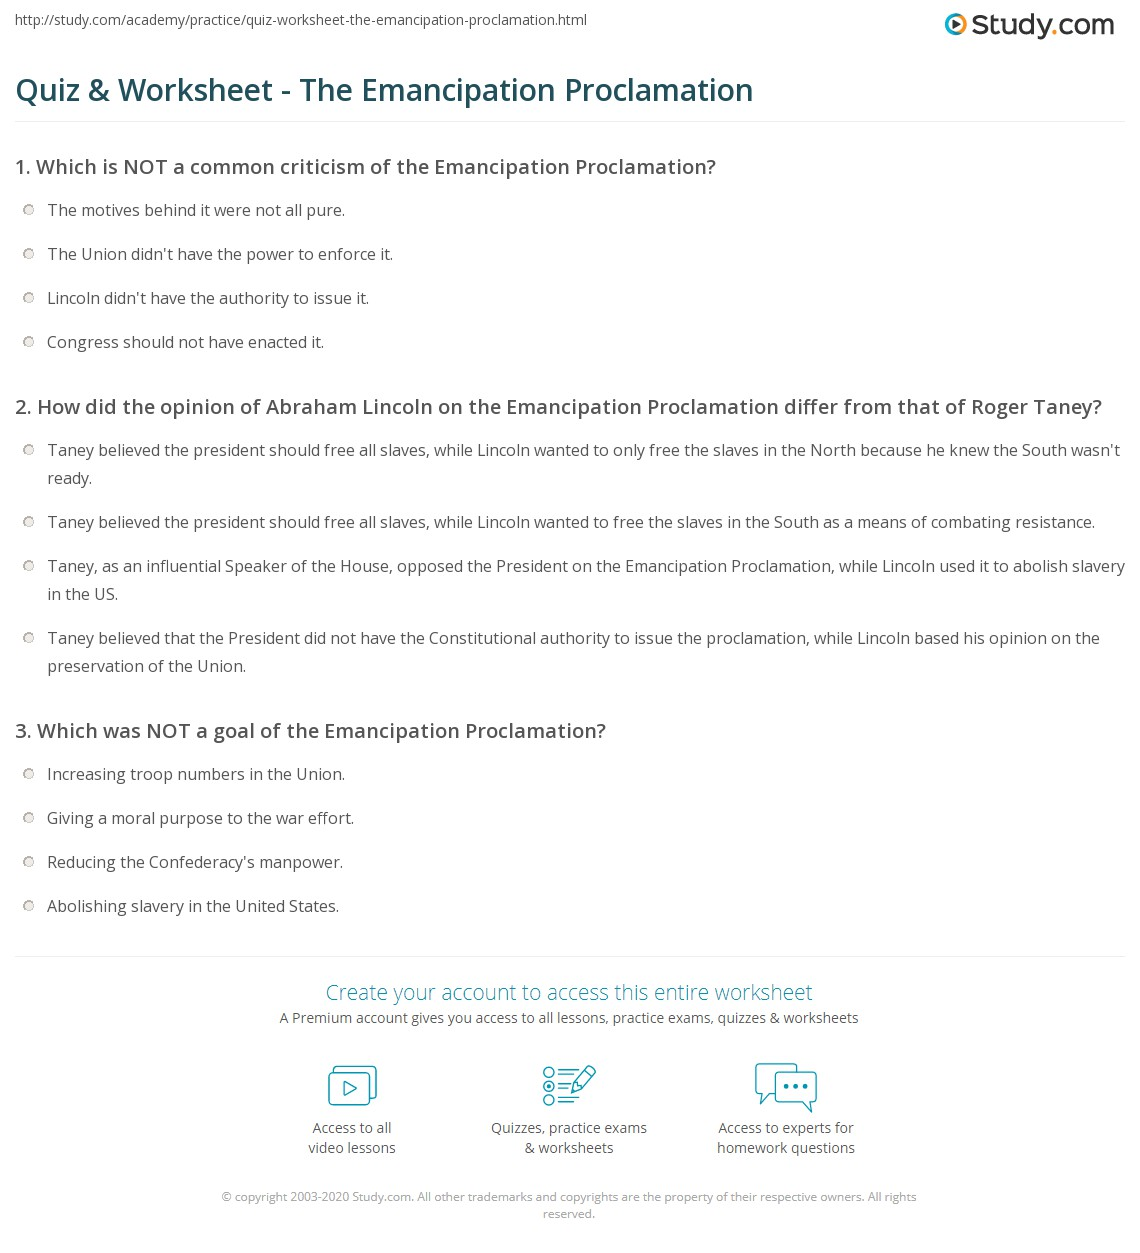 Printables Emancipation Proclamation Worksheet quiz worksheet the emancipation proclamation study com print creation context and legacy worksheet